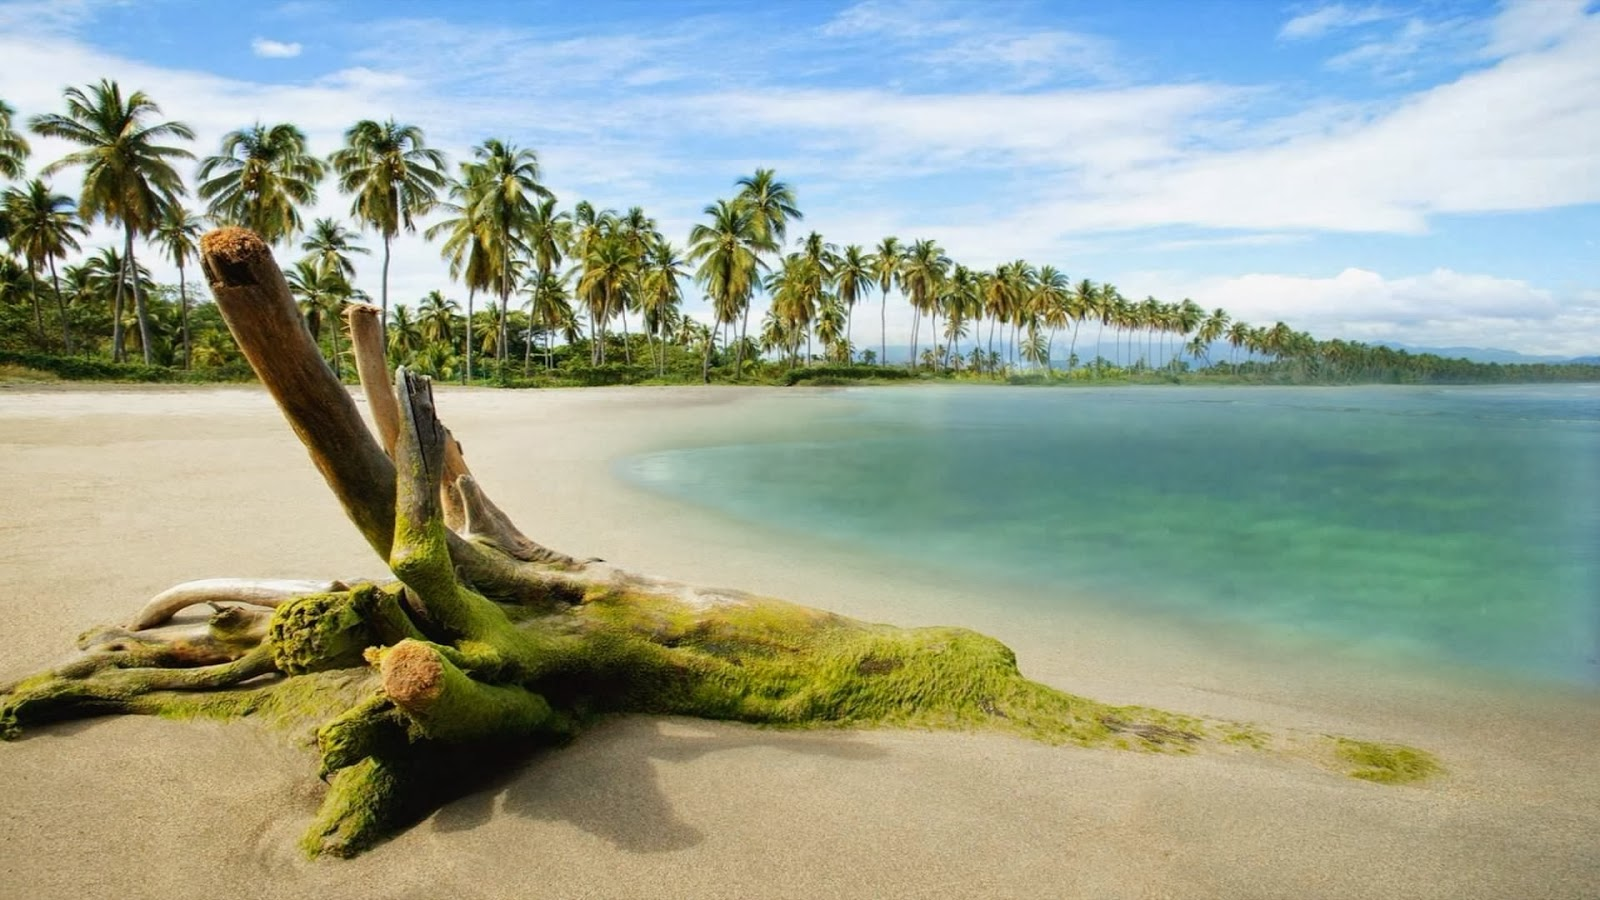 Beach Desktop Wallpaper Widescreen: Beach Nature HD Wallpapers 1080p Widescreen